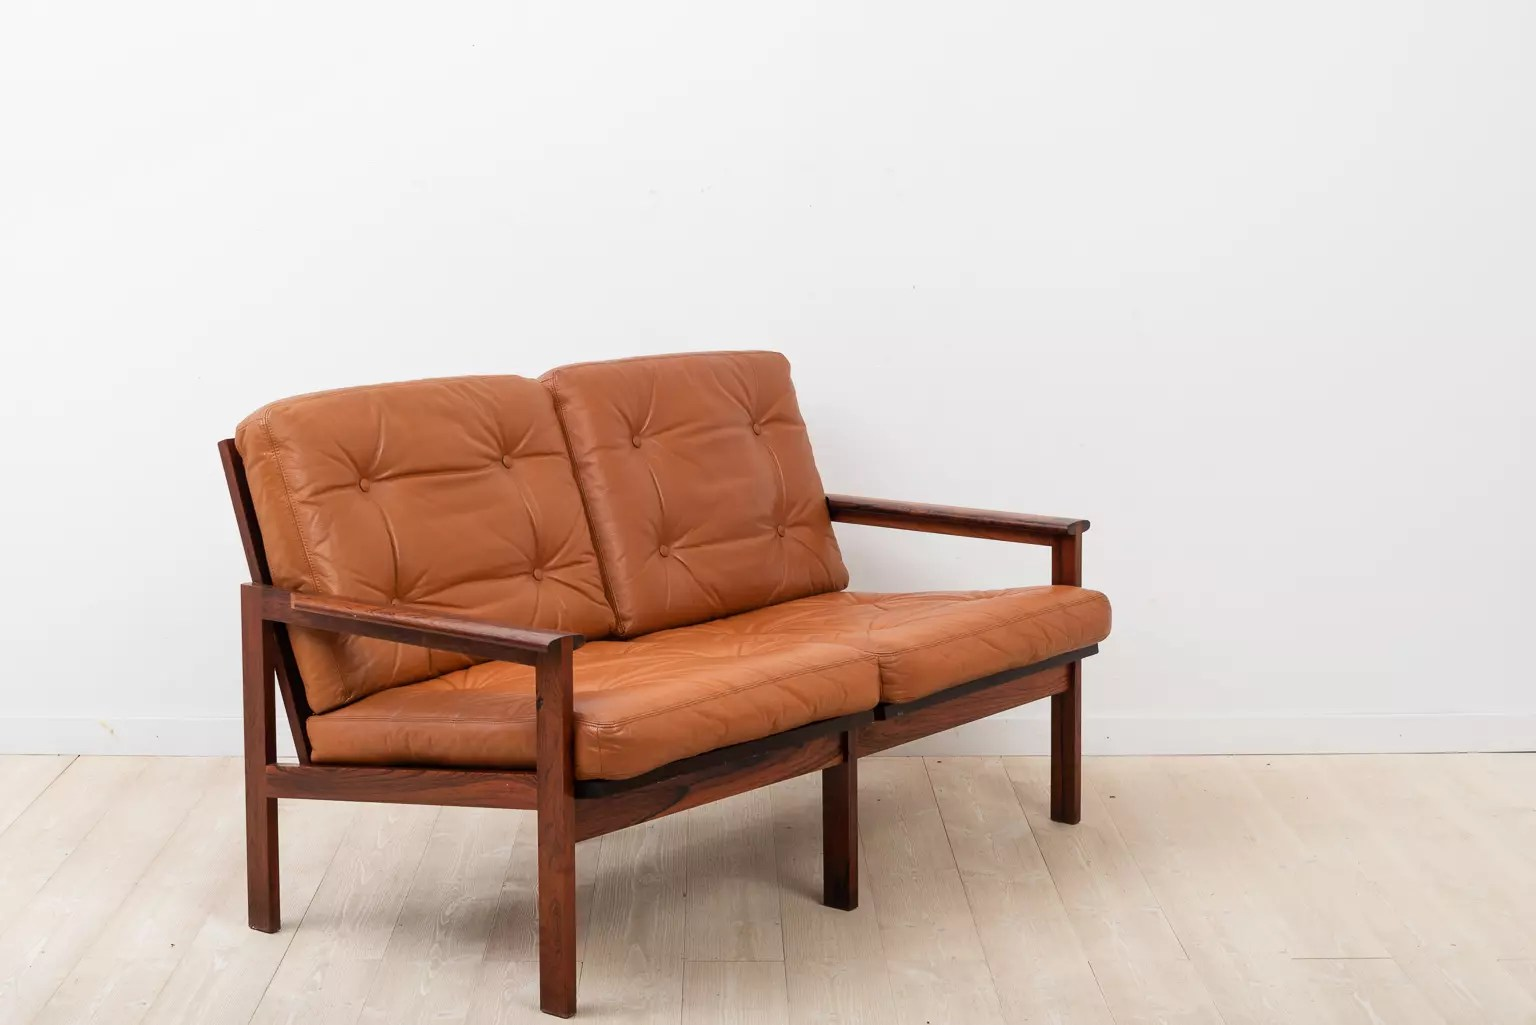 Sofa Group Capella Designed By Illum Wikkelsø 1959 Frånö Antik